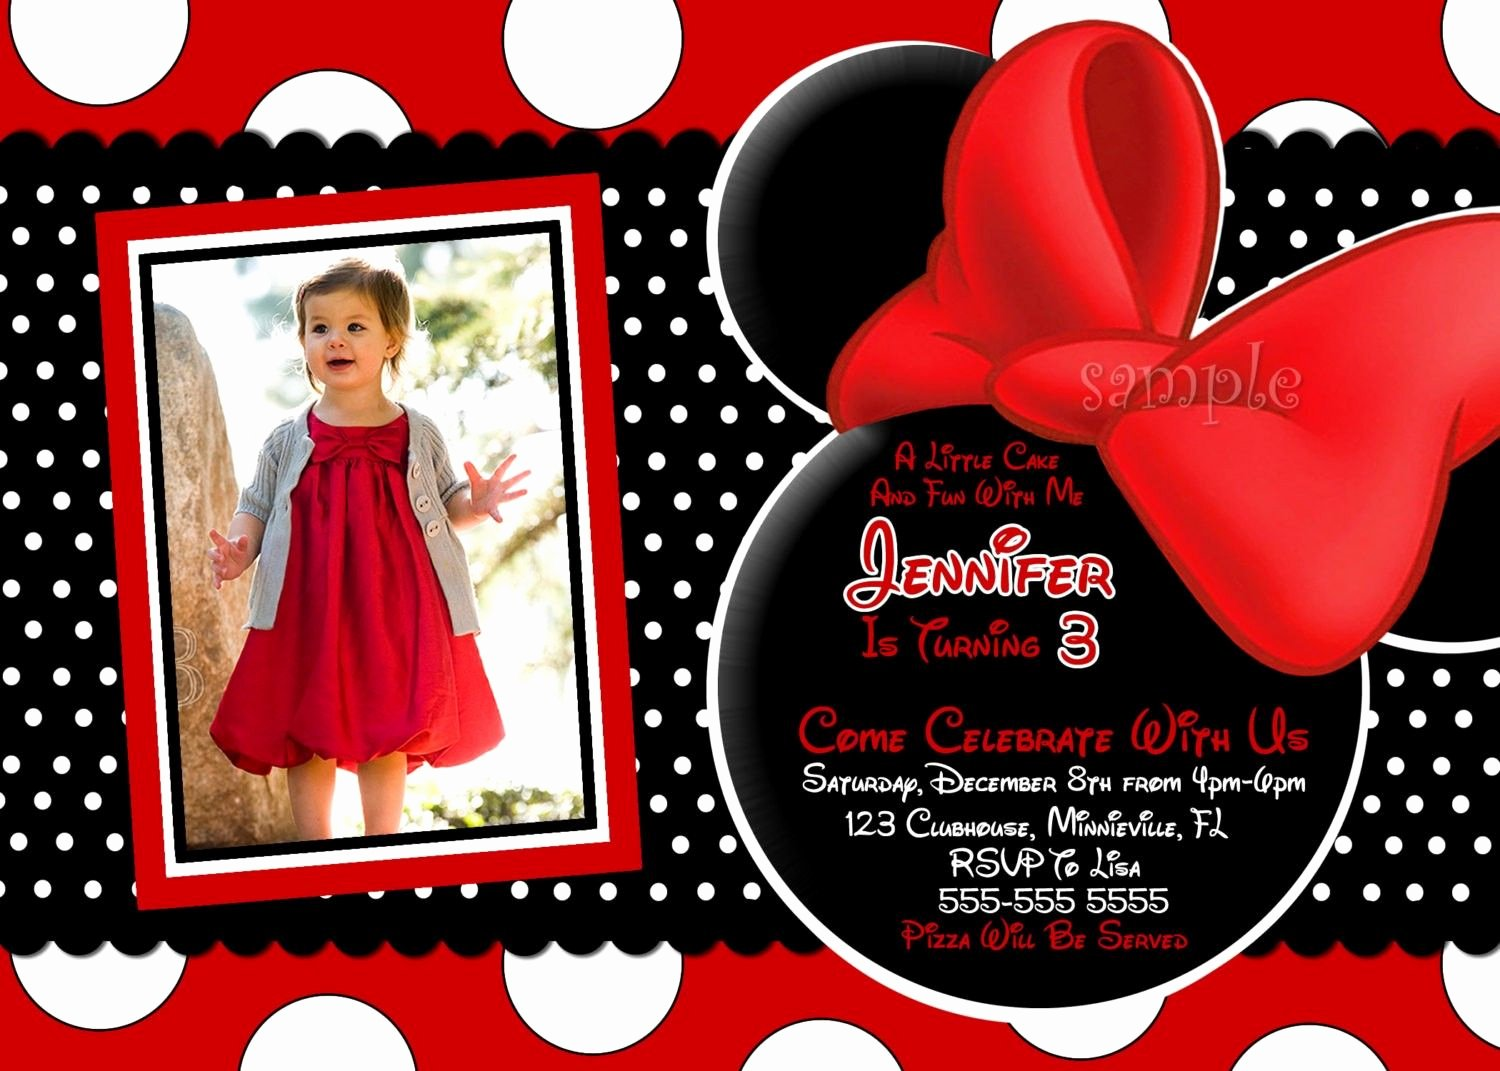 Minnie Mouse Invitations Free Elegant Free Minnie Mouse Birthday Invitations Templates